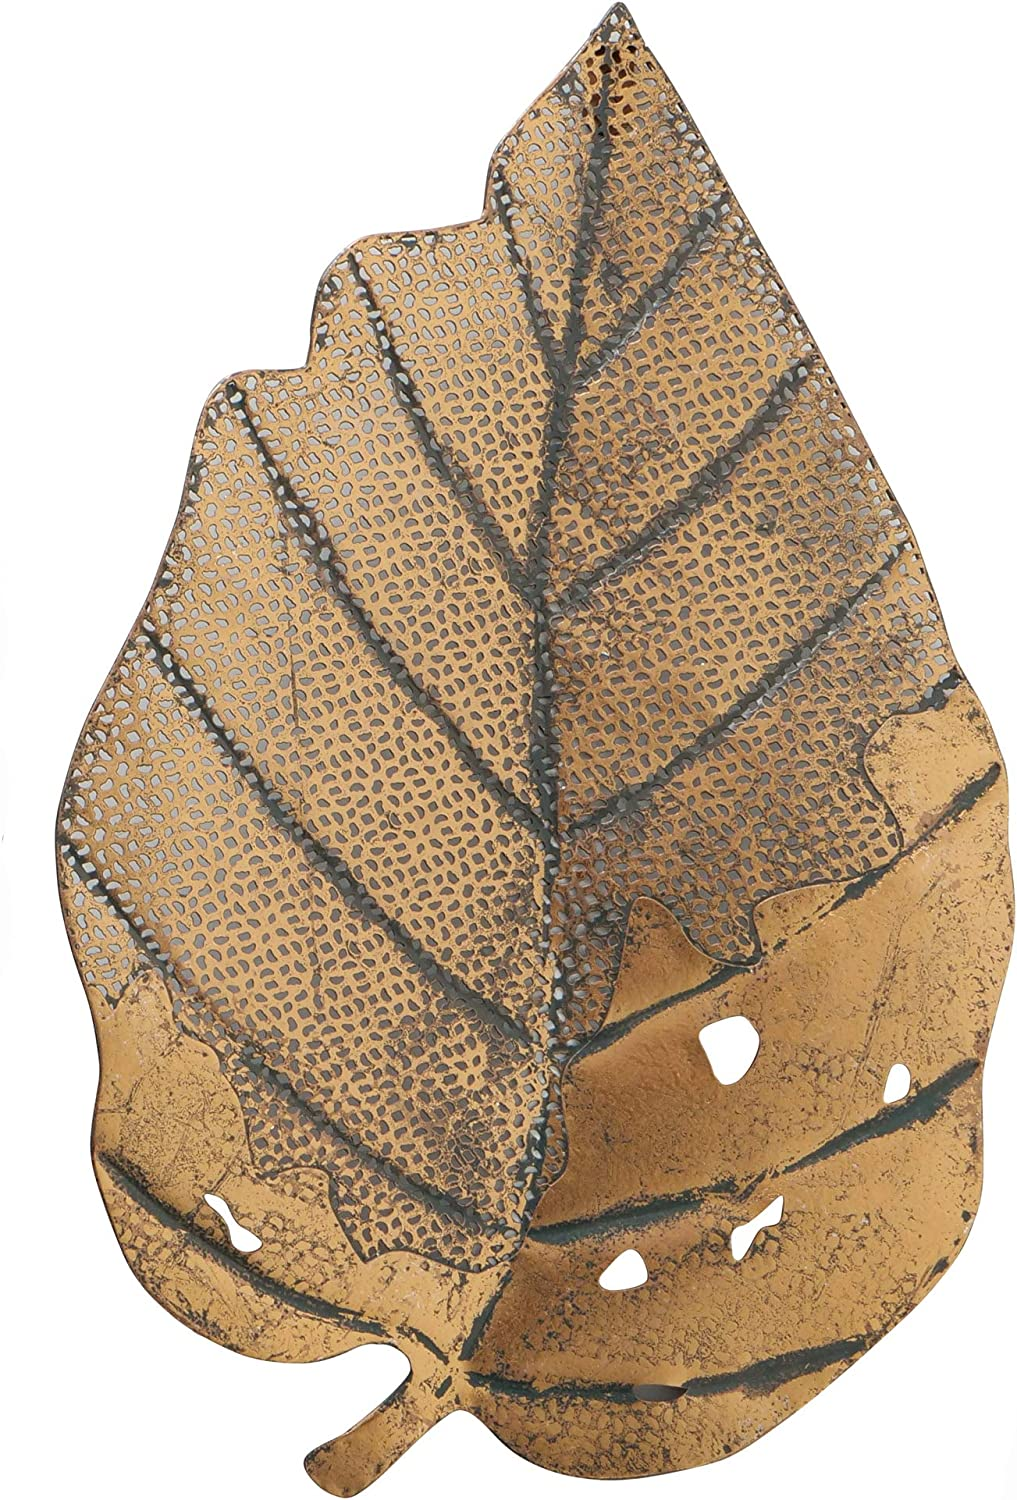 Leaf Wall Art Sculpture, Antique Gold Finish, Powder Coated Iron, Metal Cut Outs and Open Patches, Hanger on Back, 12.25 W x 19.0 H Inches